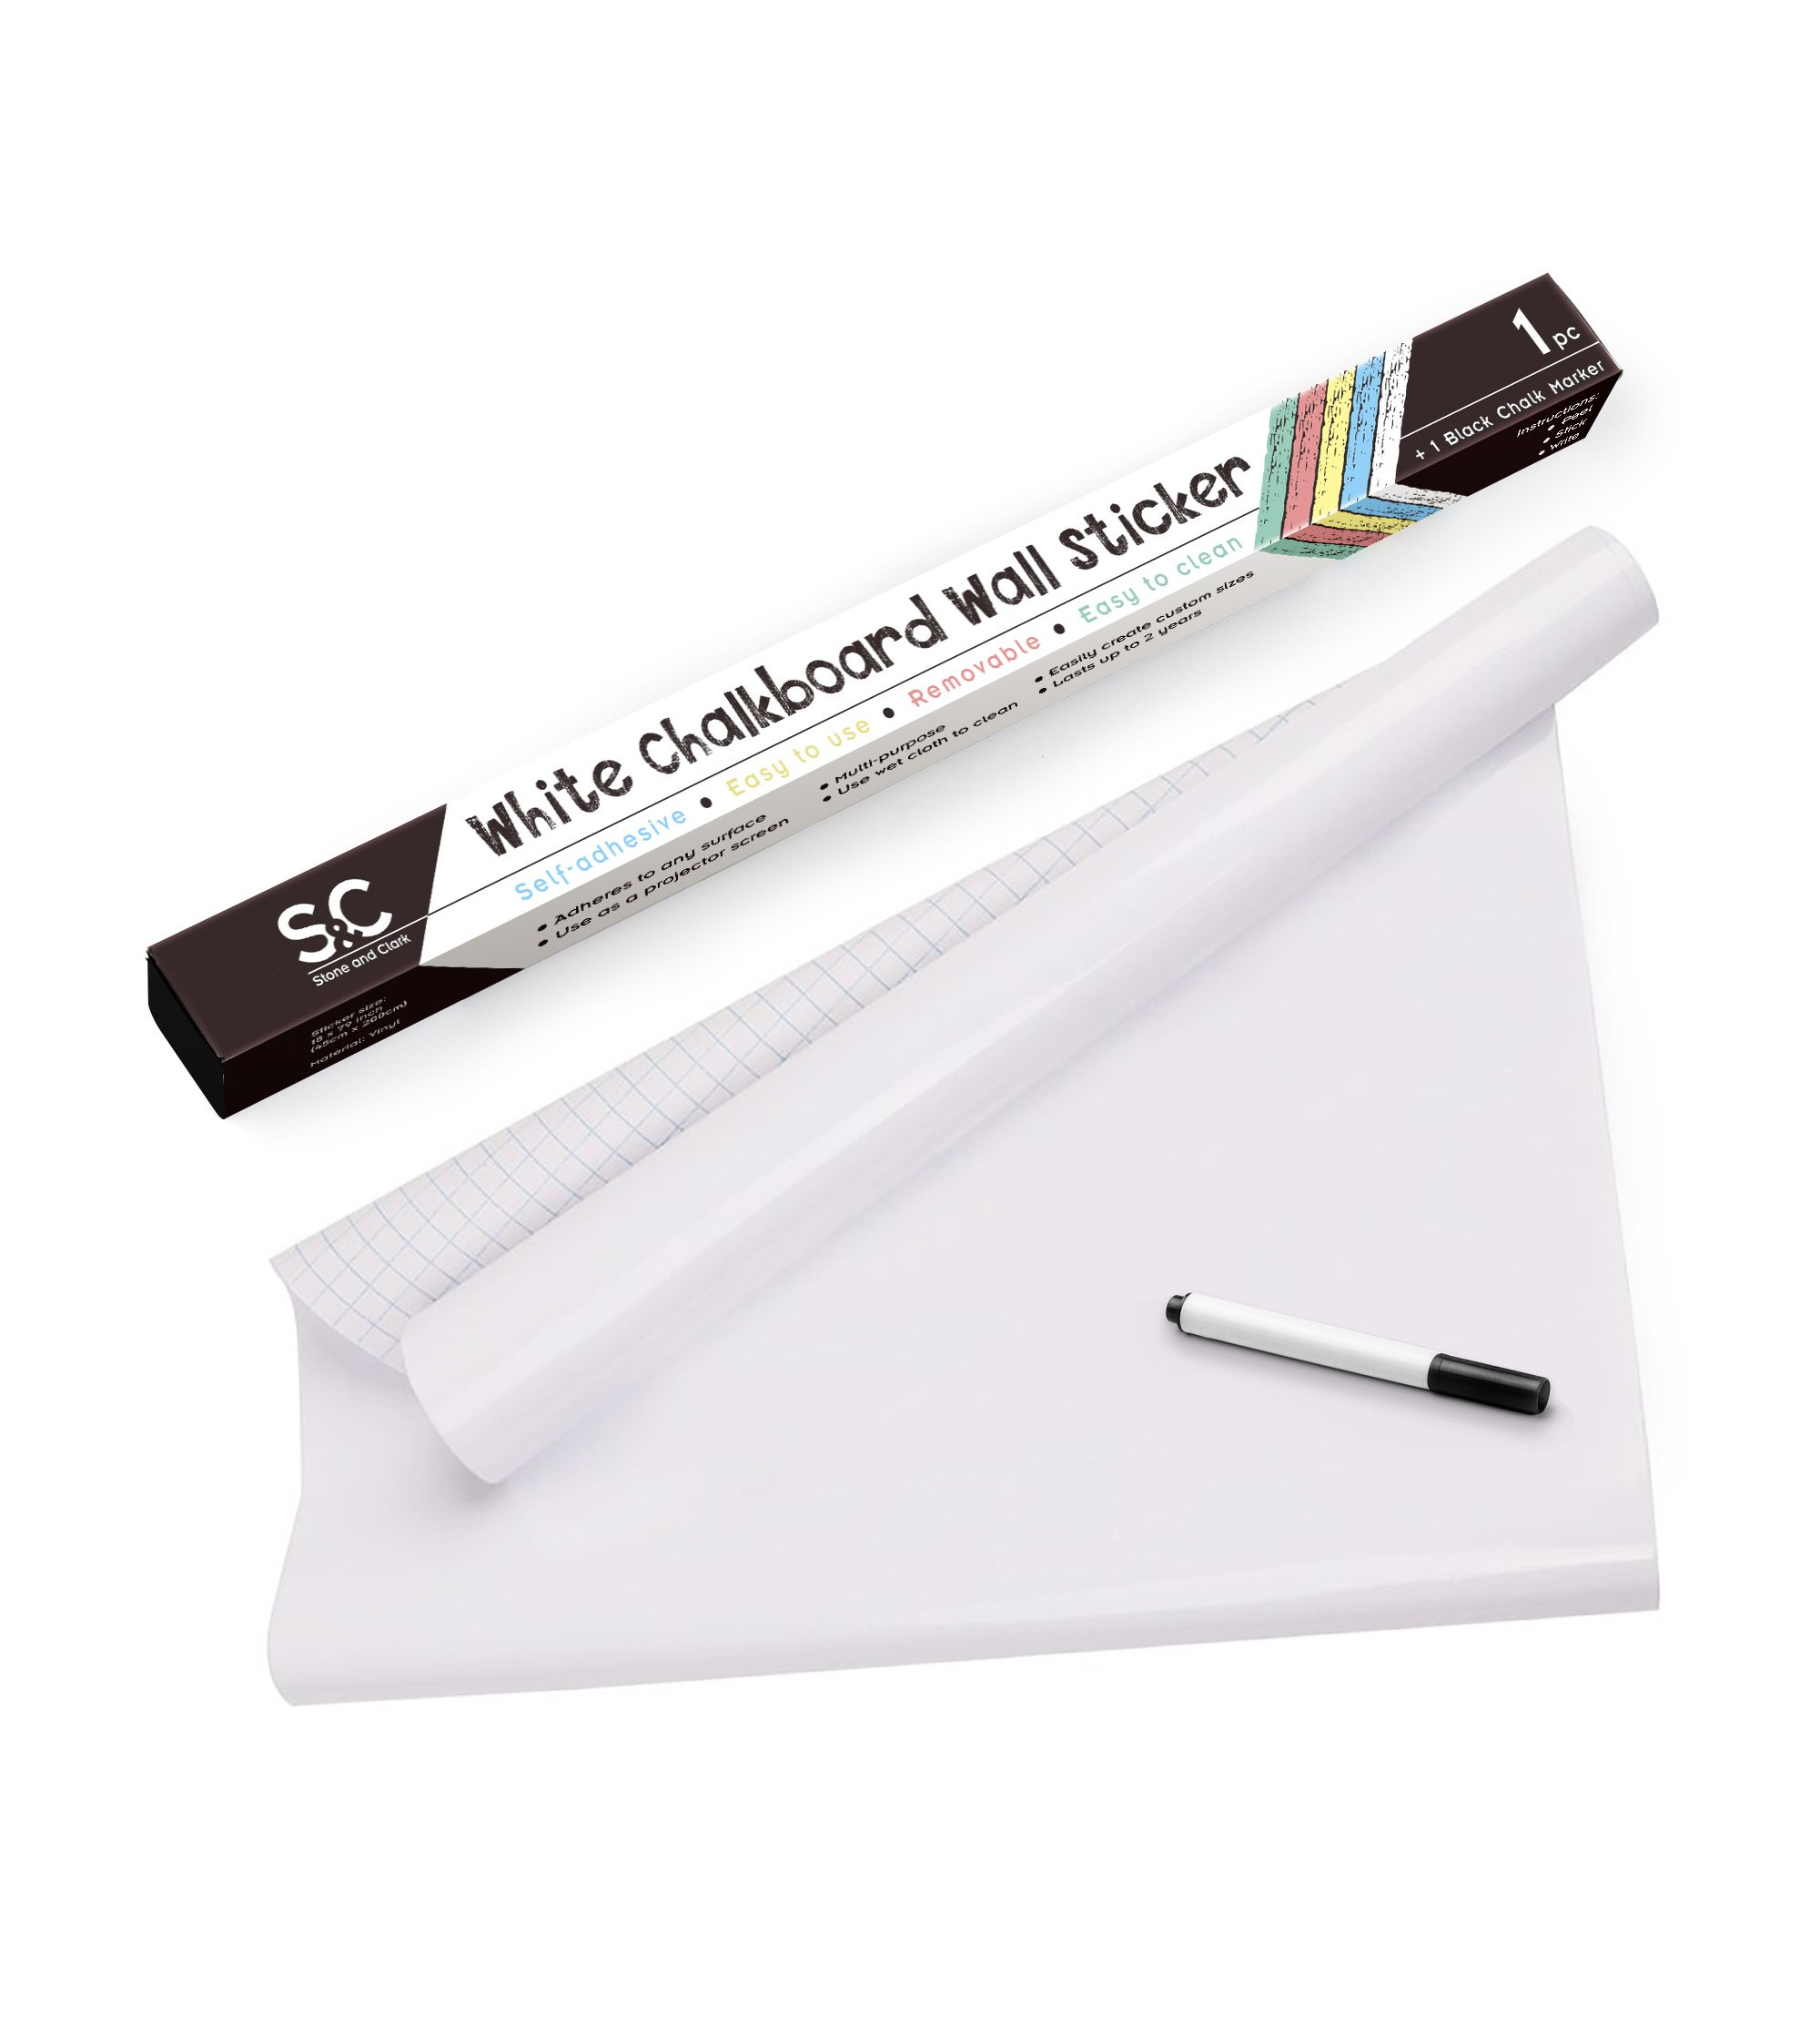 Stone and Clark White Self-Adhesive Dry Erase Paper/Whiteboard Sticker. Large Size 1.5' x 6'. Includes a Black Marker Pen